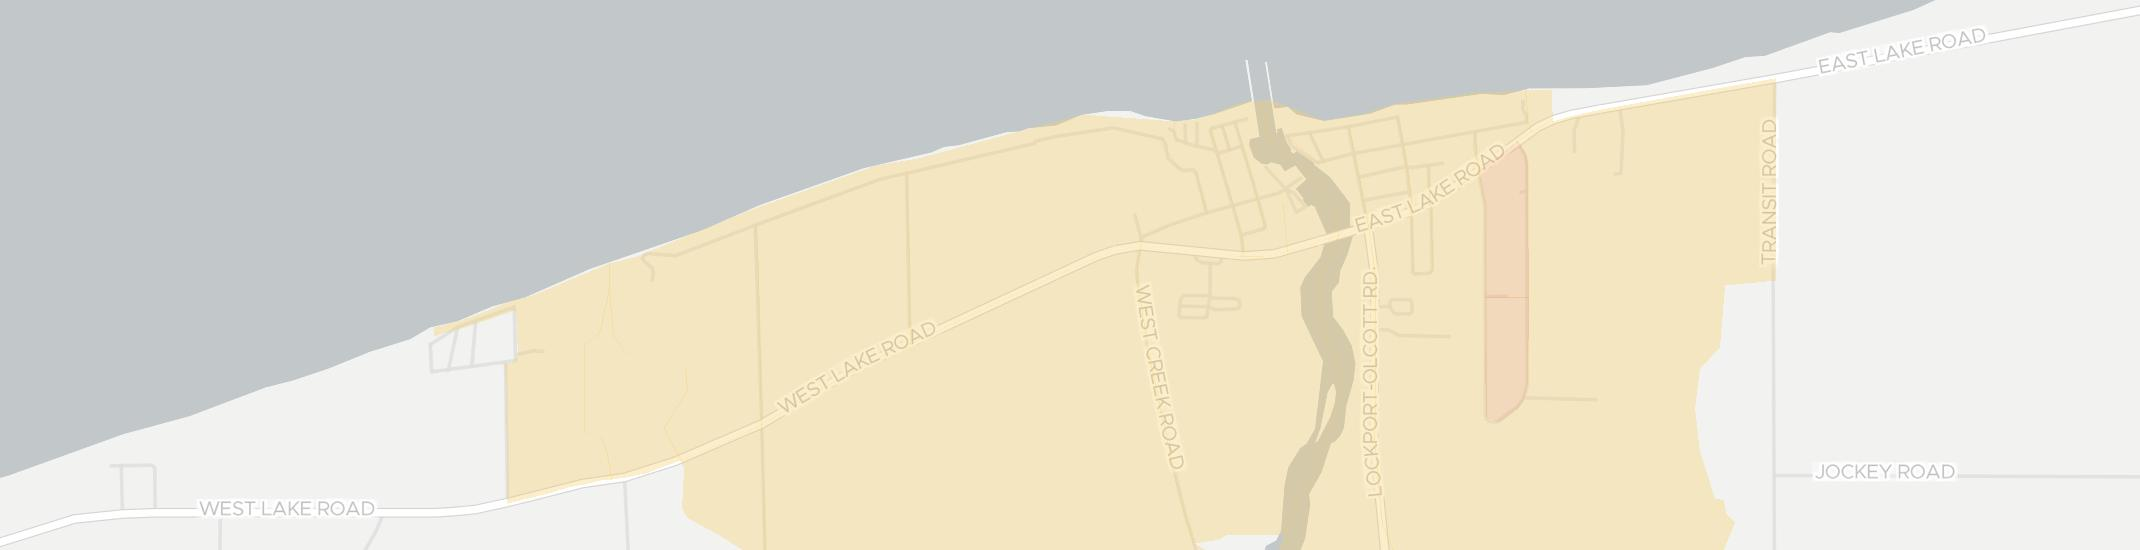 Olcott Internet Competition Map. Click for interactive map.